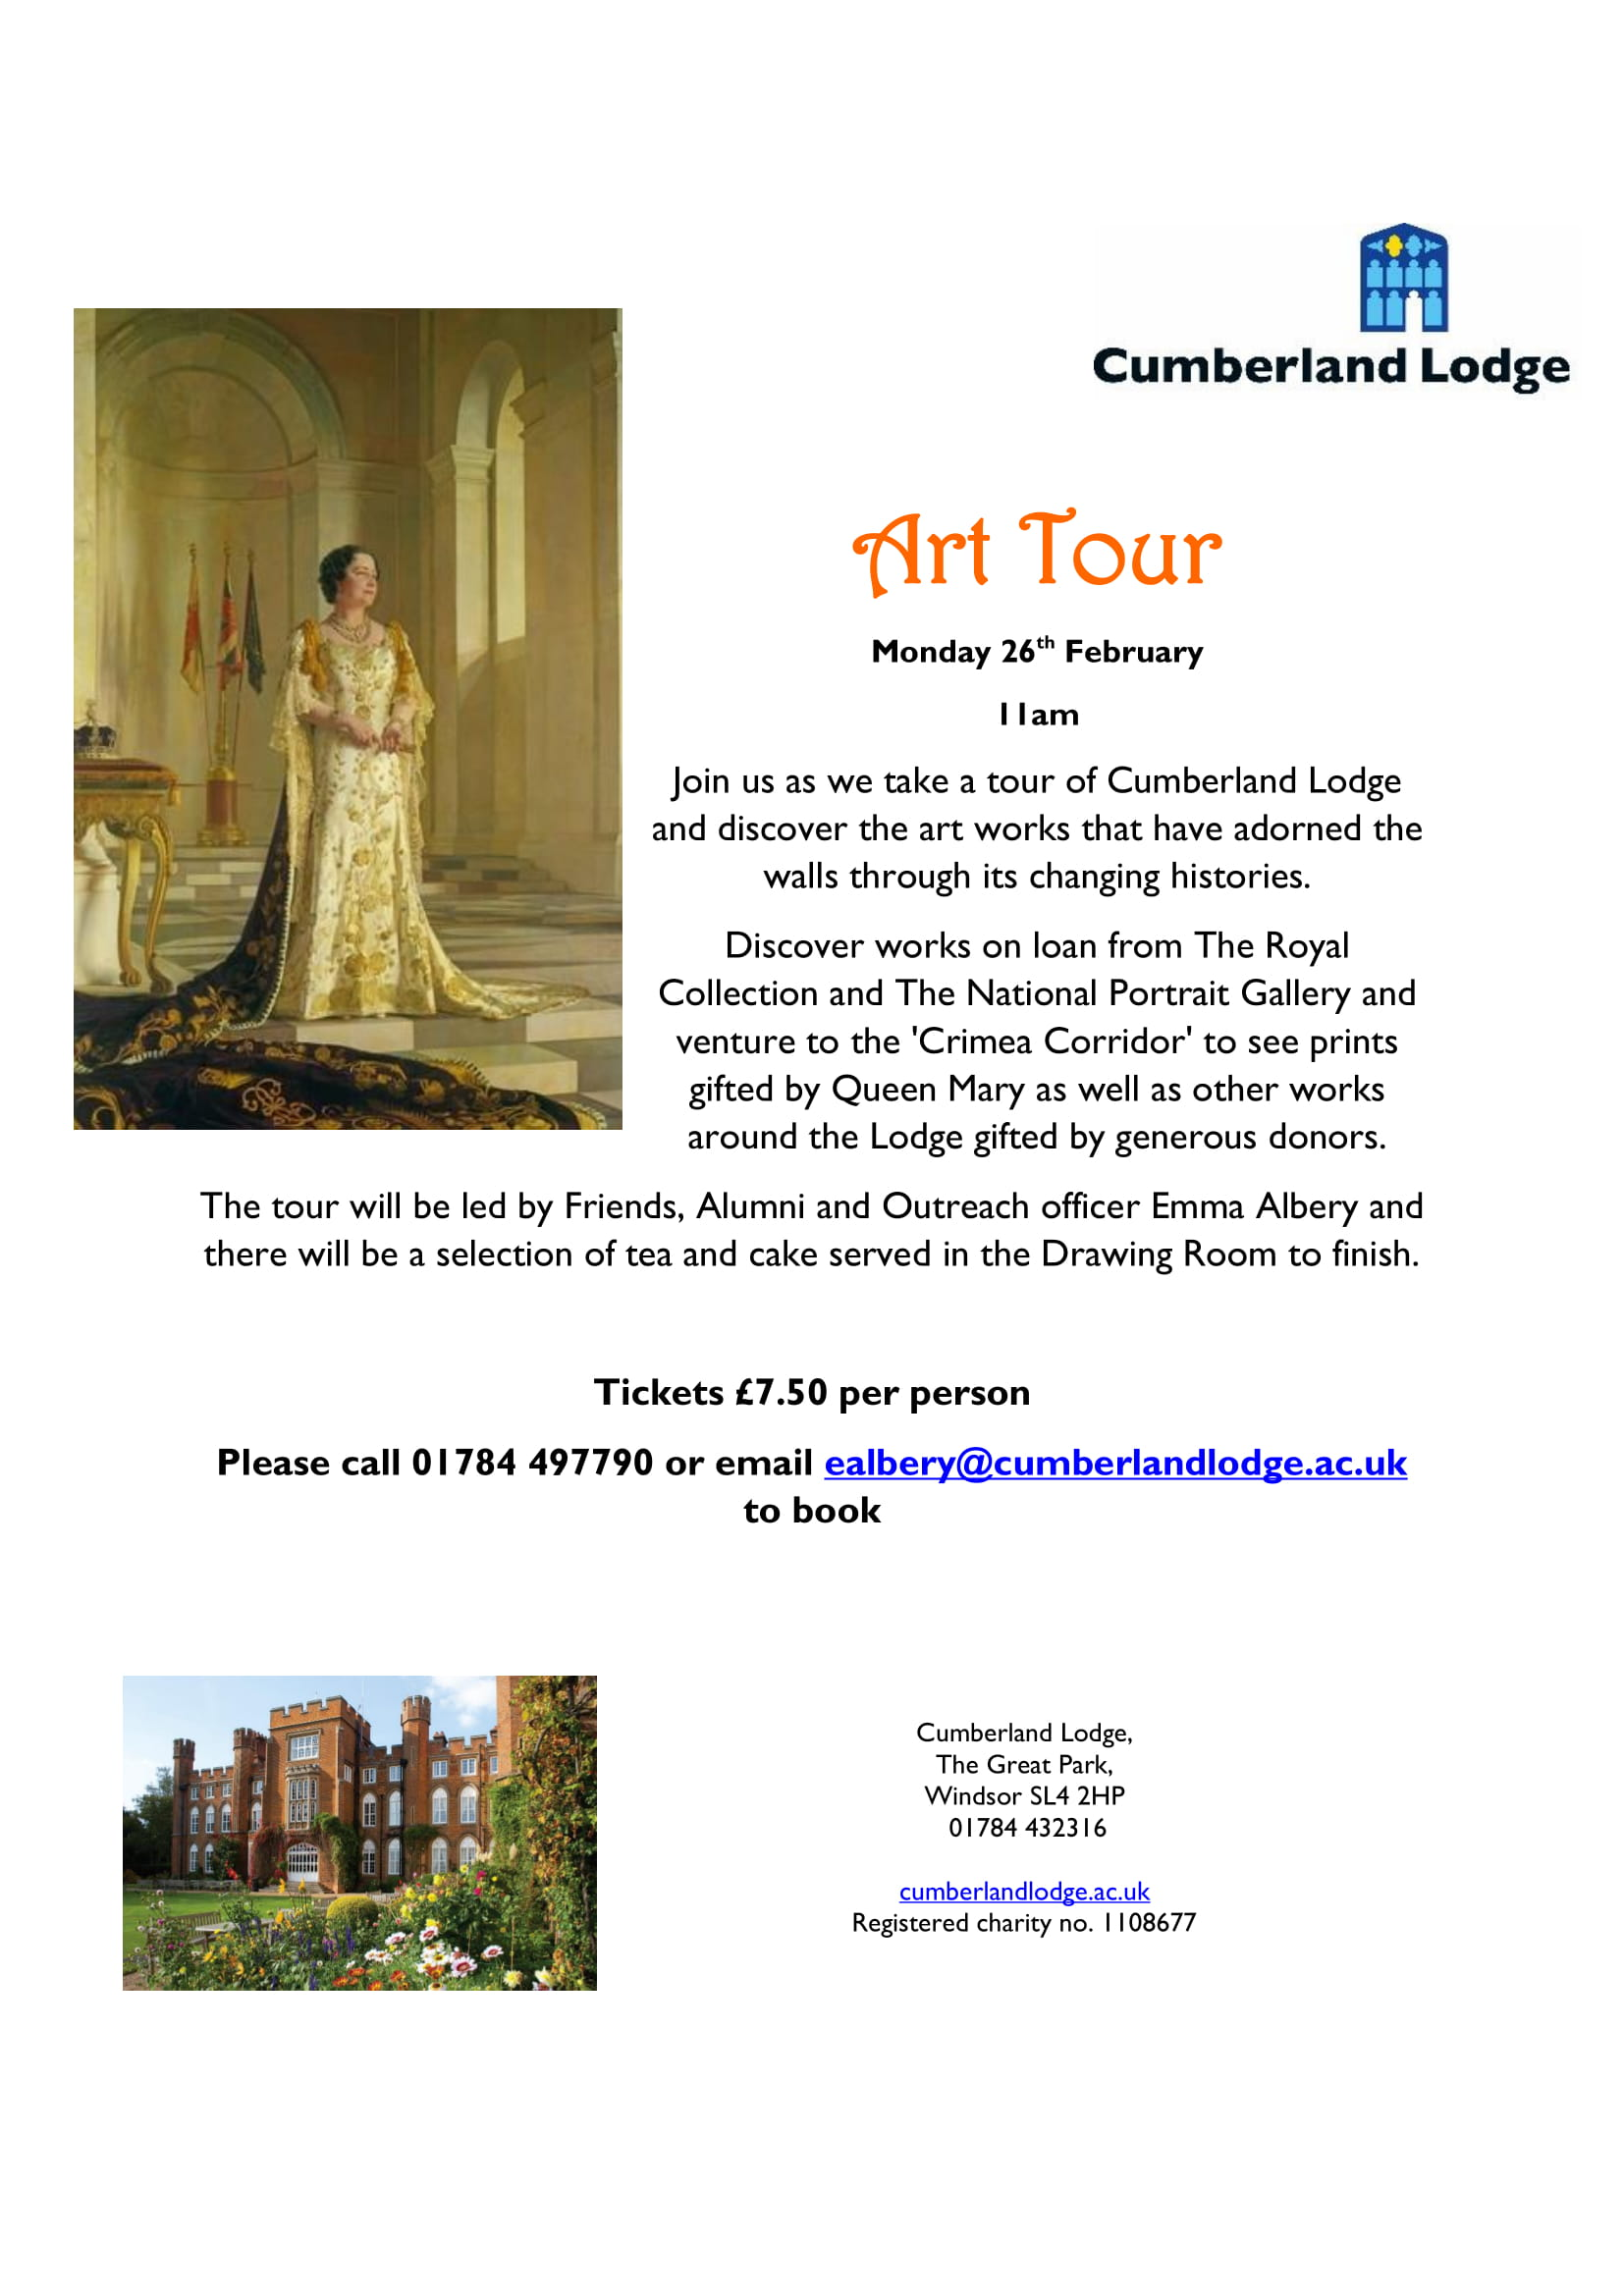 Cumberland Lodge Art Tour